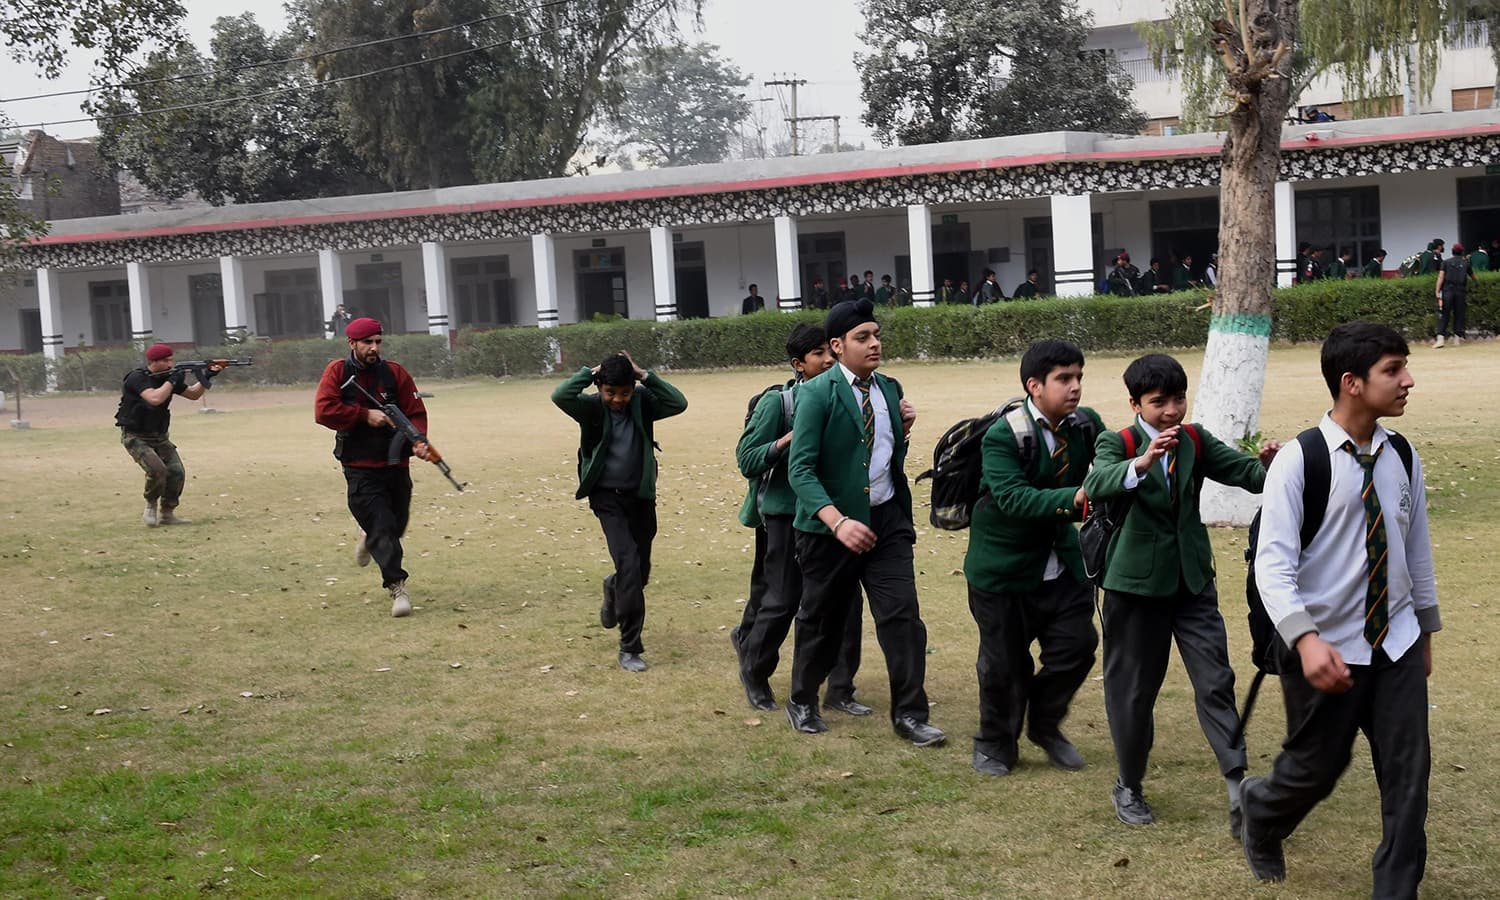 Students form a queue during a security drill at a school in Peshawar. —AFP